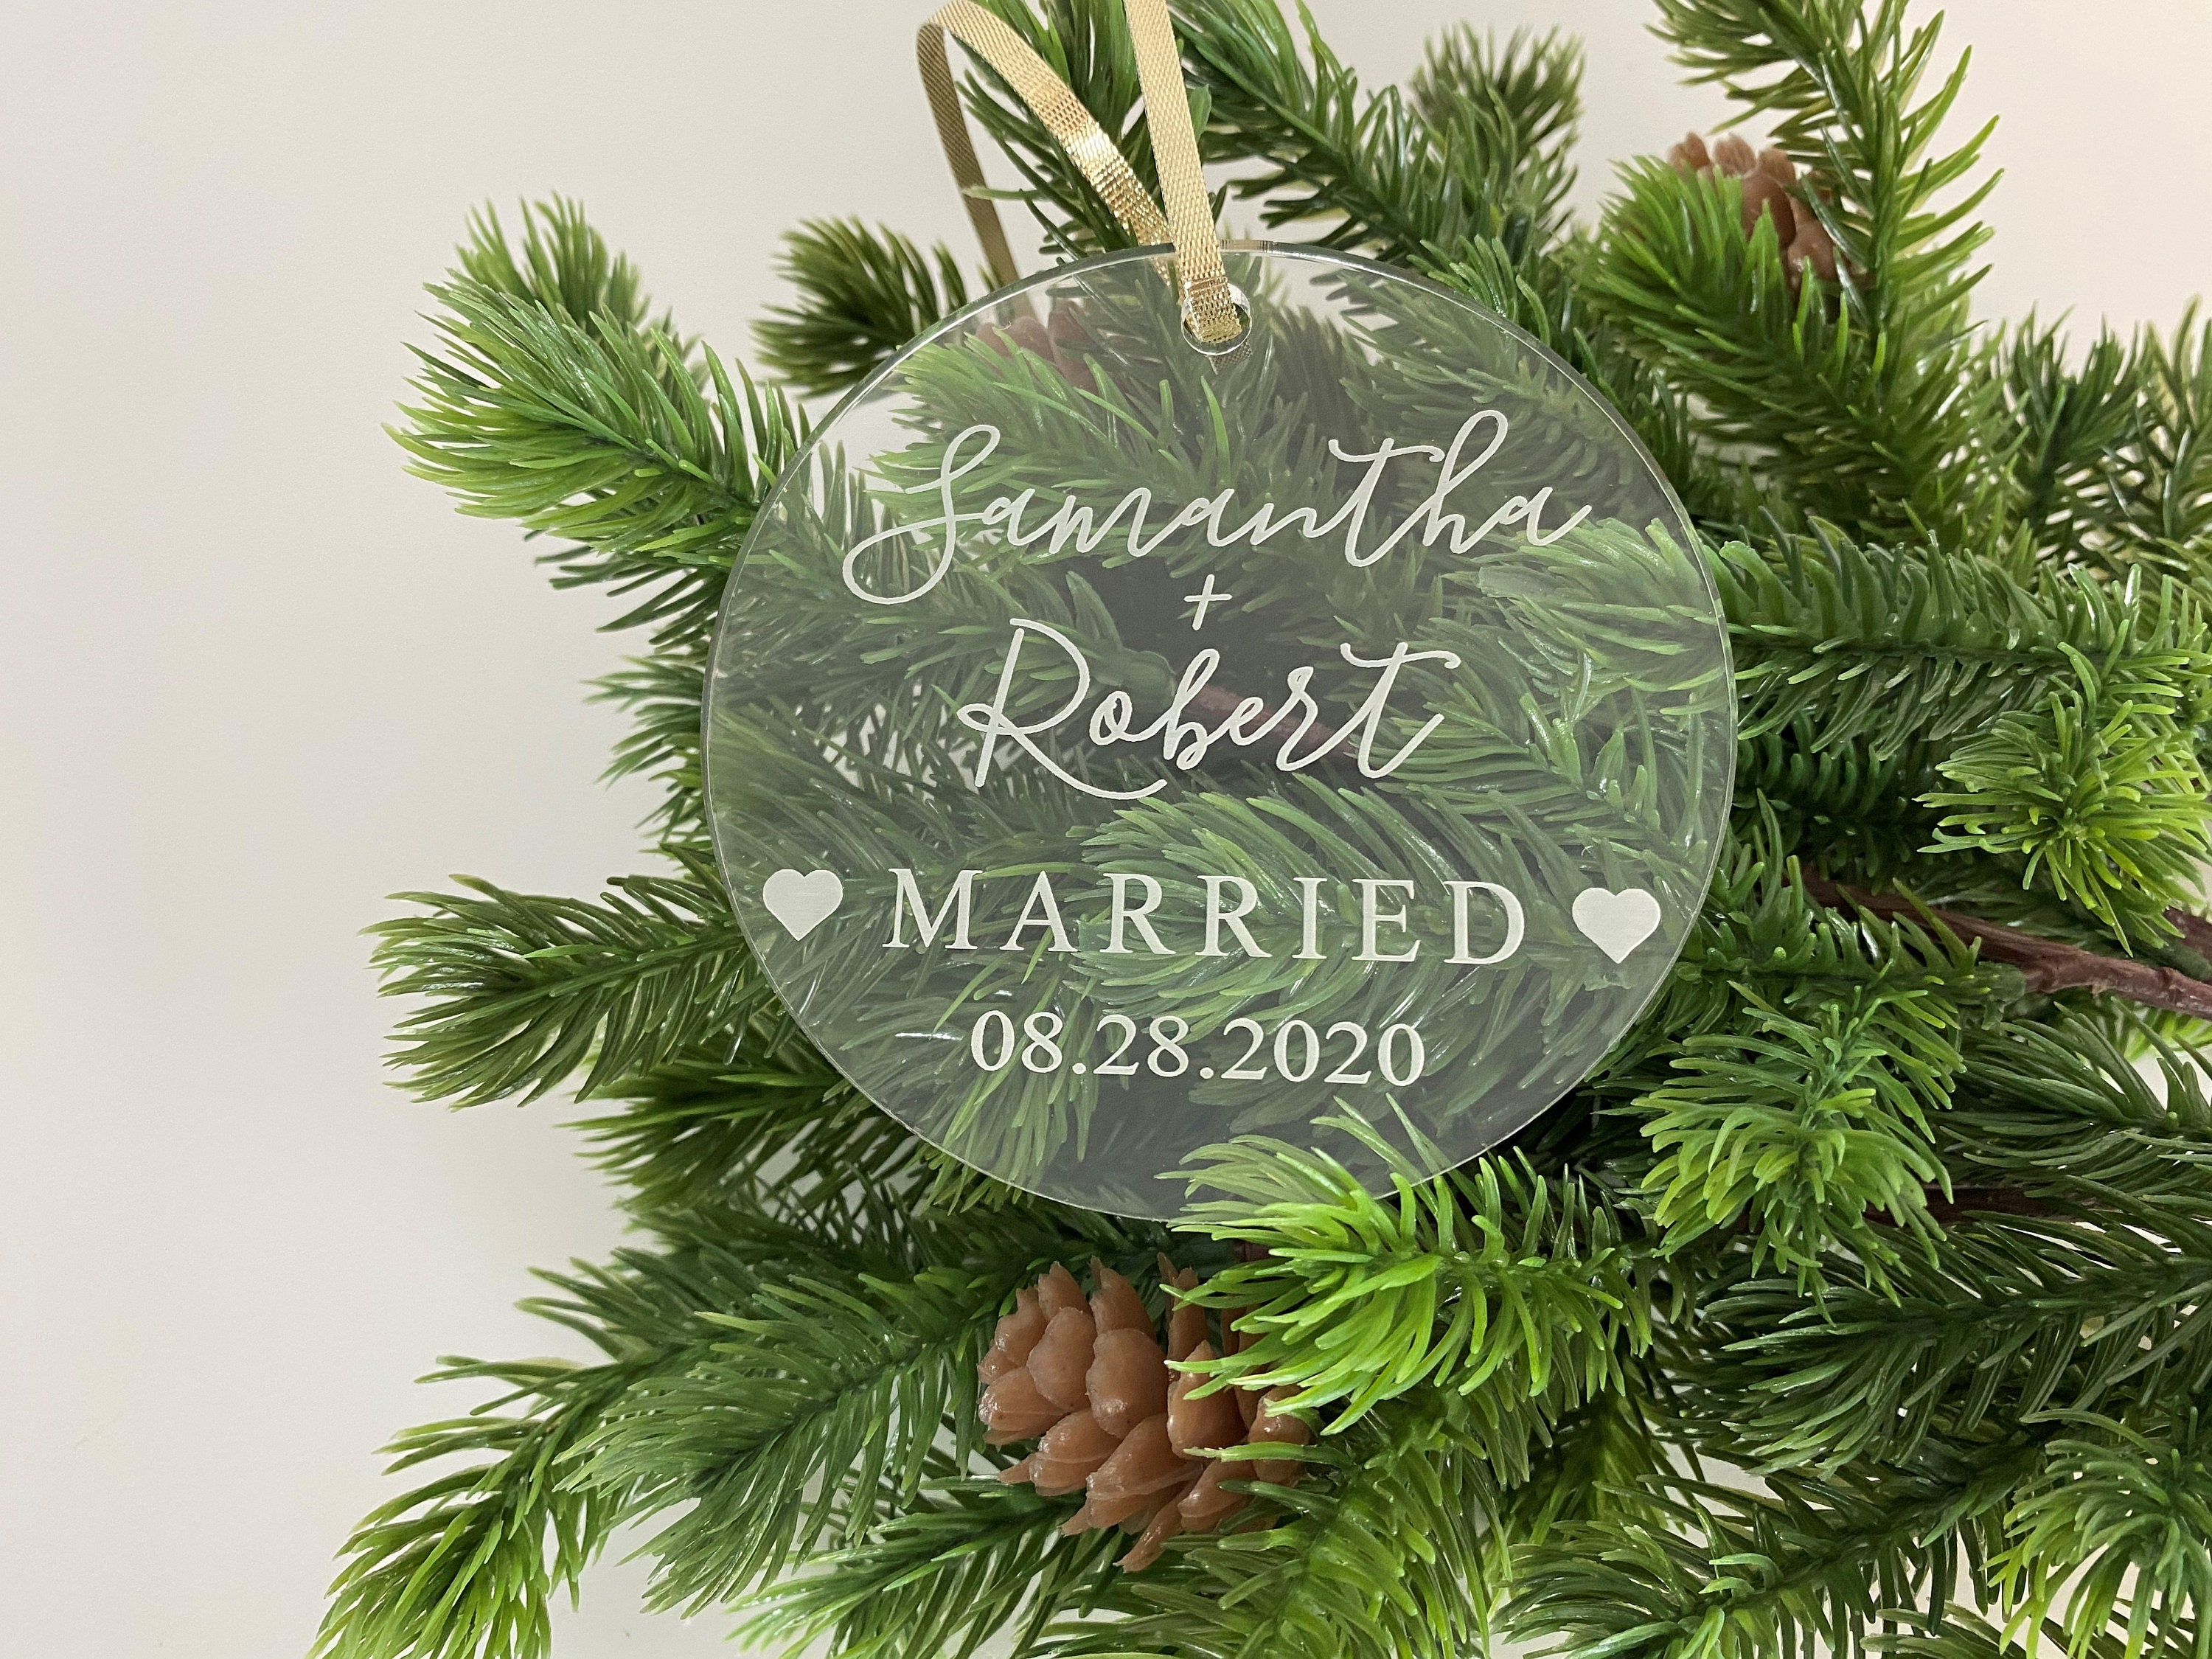 Wedding Christmas Ornament | Laser Engraved Personalized Acrylic Ornament | First Christmas Married Gift | 2020 Wedding Gift